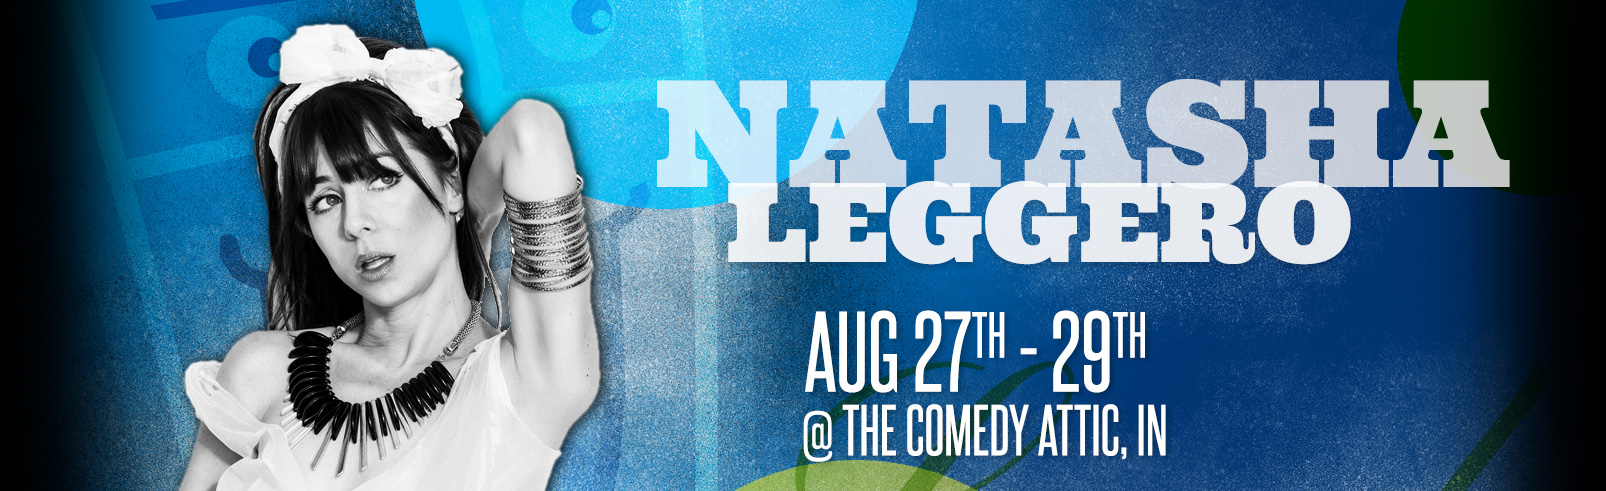 Natasha Leggero @ The Comedy Attic